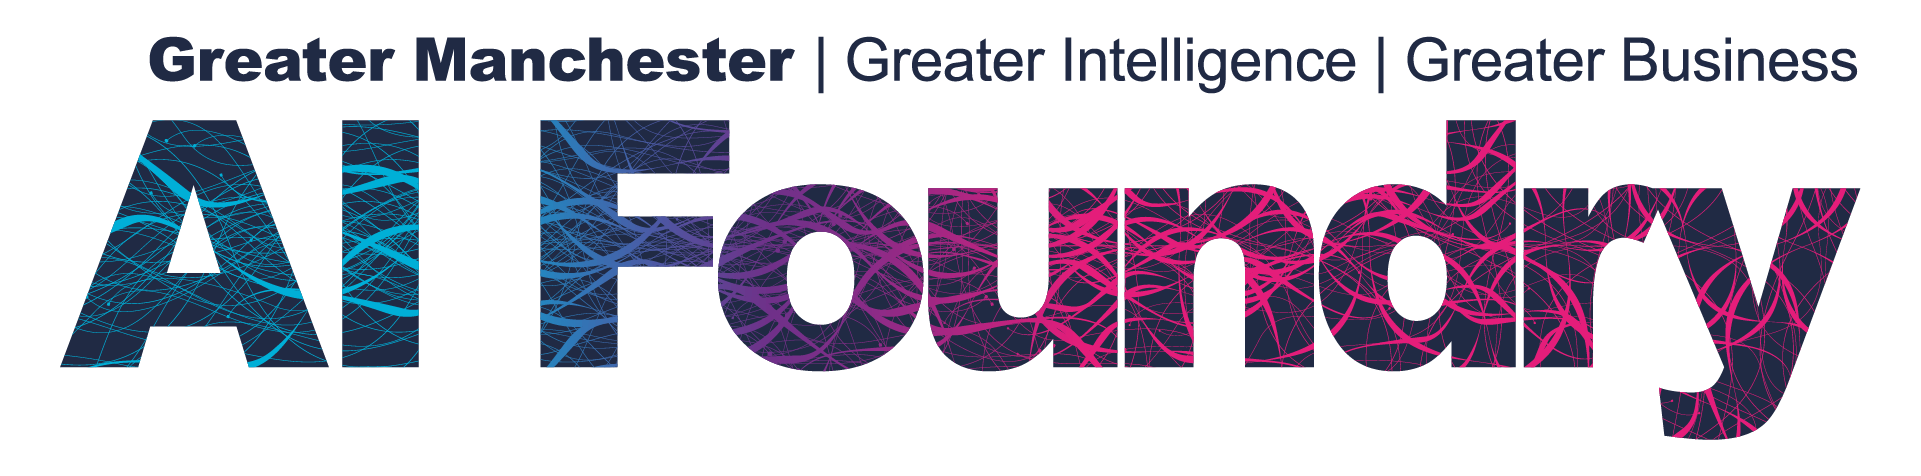 https://www.pro-manchester.co.uk/wp-content/uploads/2021/02/AI-Foundry-Logo_RGB_Full-Colour.png